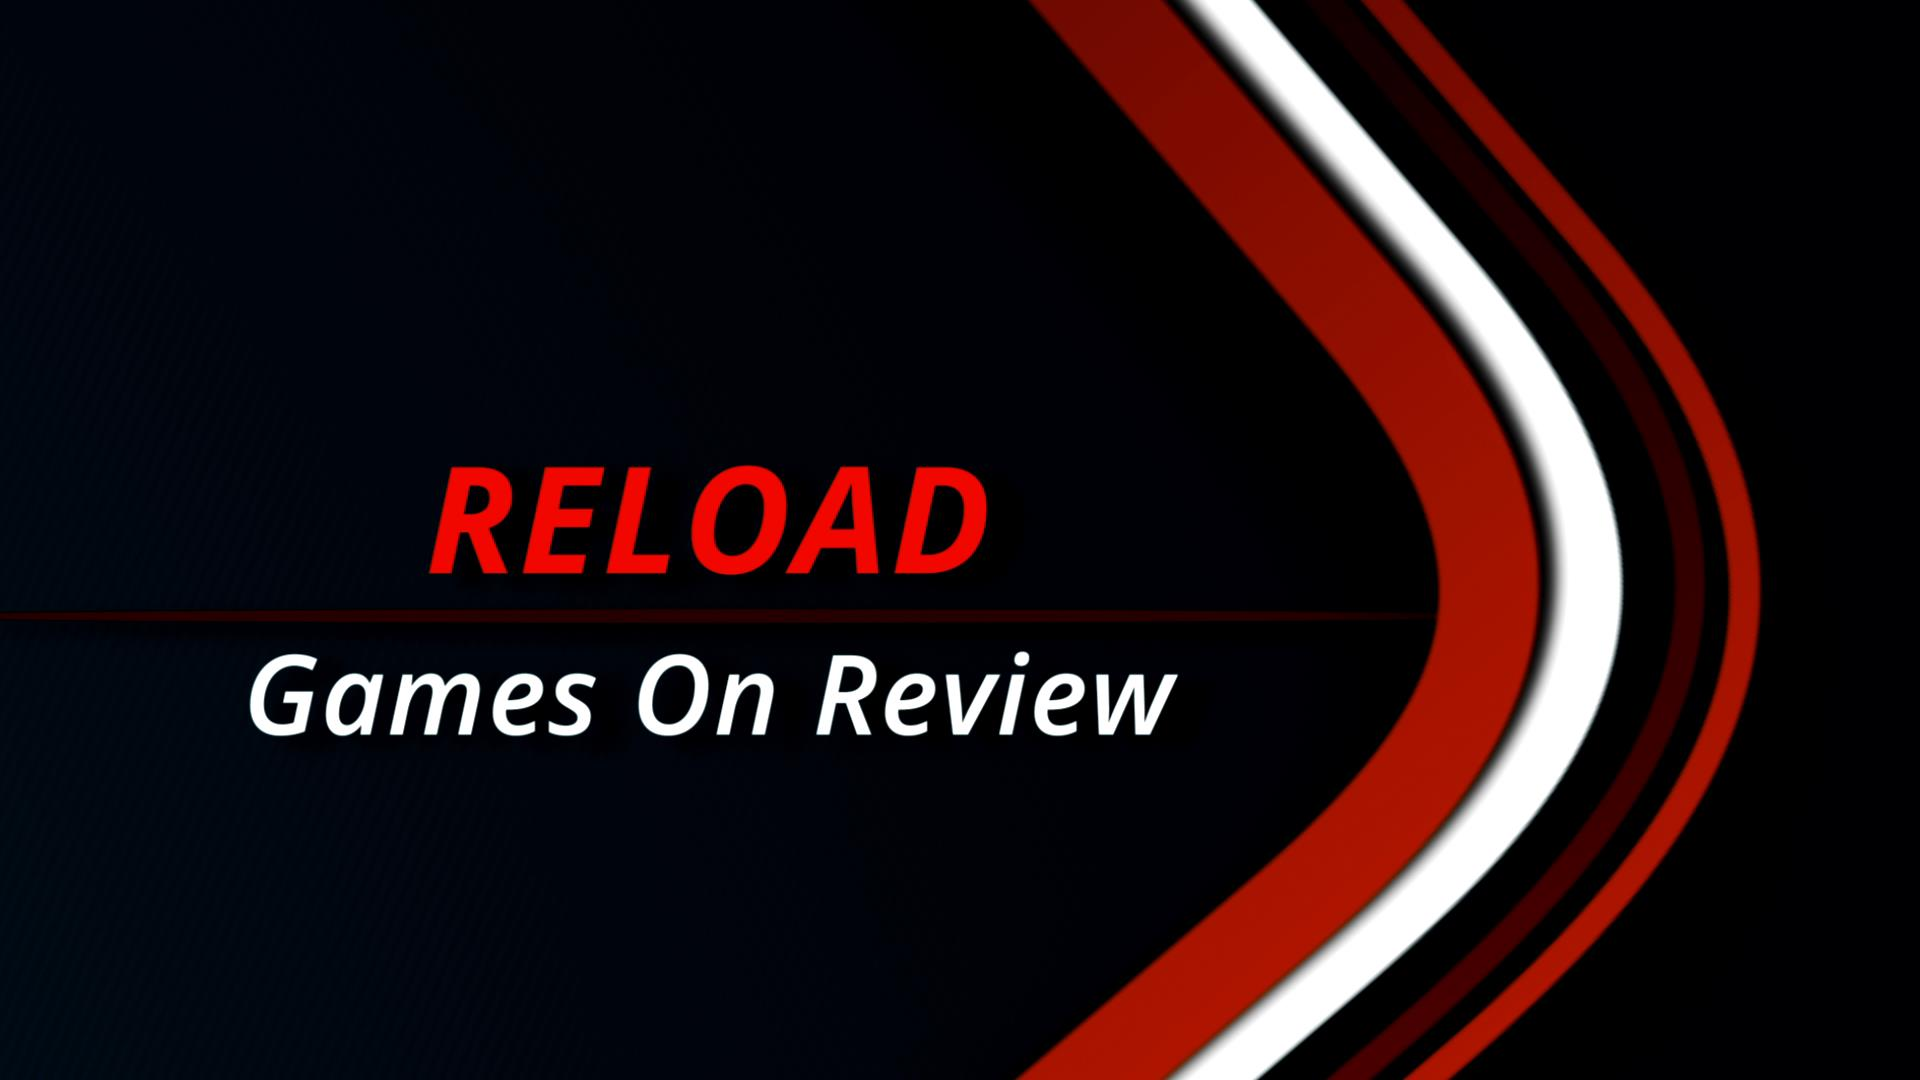 RE-LOAD: Games On Review